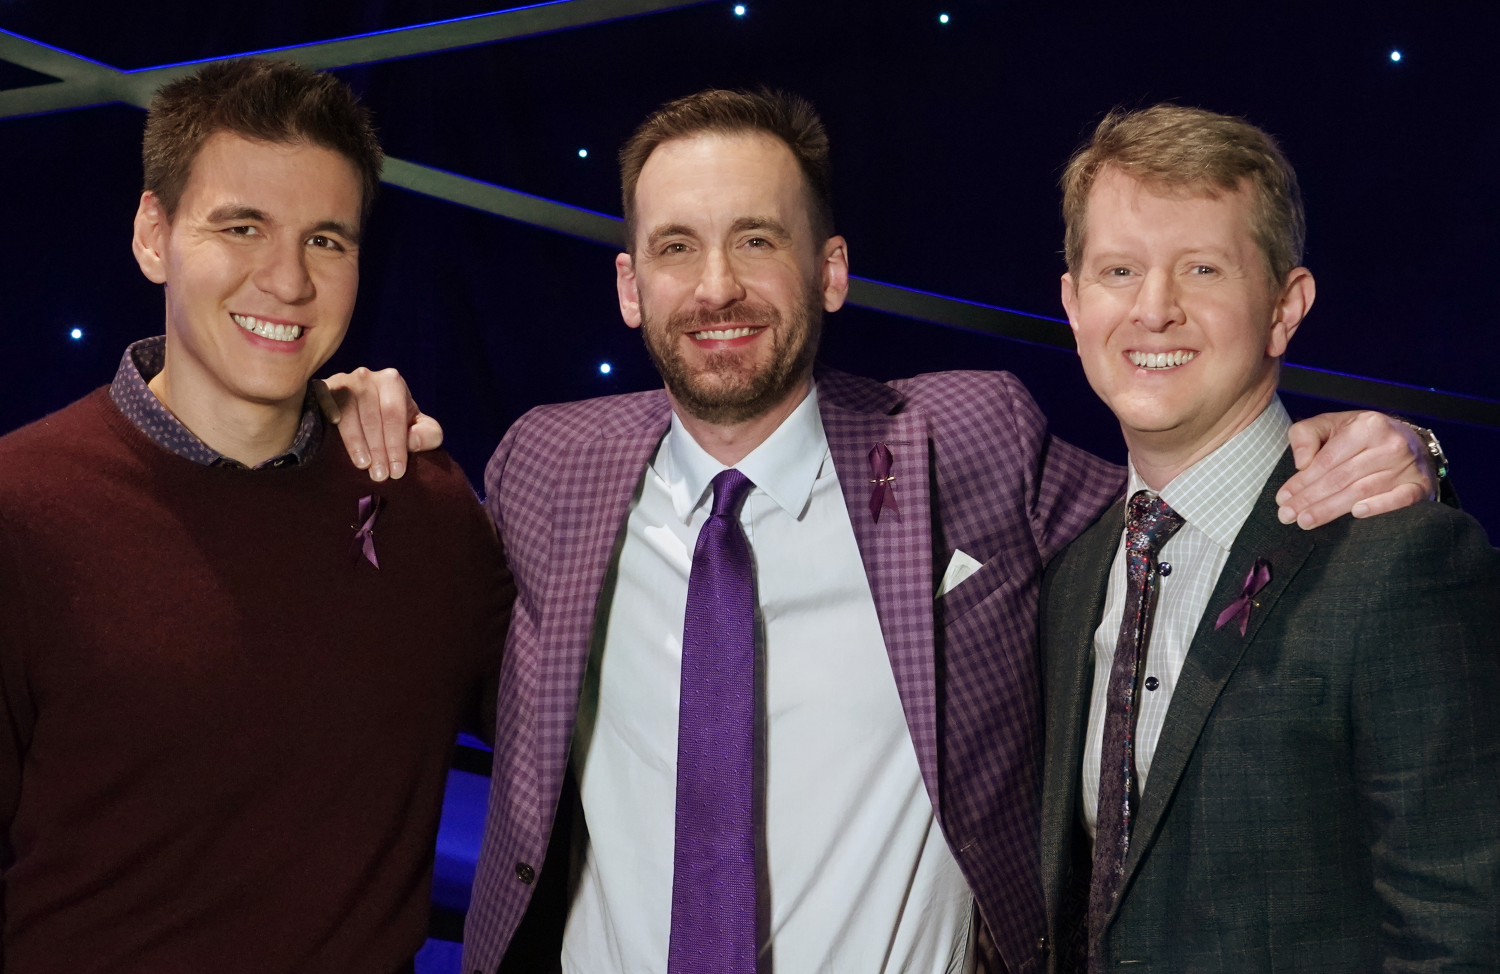 Jeopardy! legends James Holzhauer, Brad Rutter and Ken Jennings will battle it out in this week's three-night primetime event, Jeopardy: Greatest of All Time. (ABC)